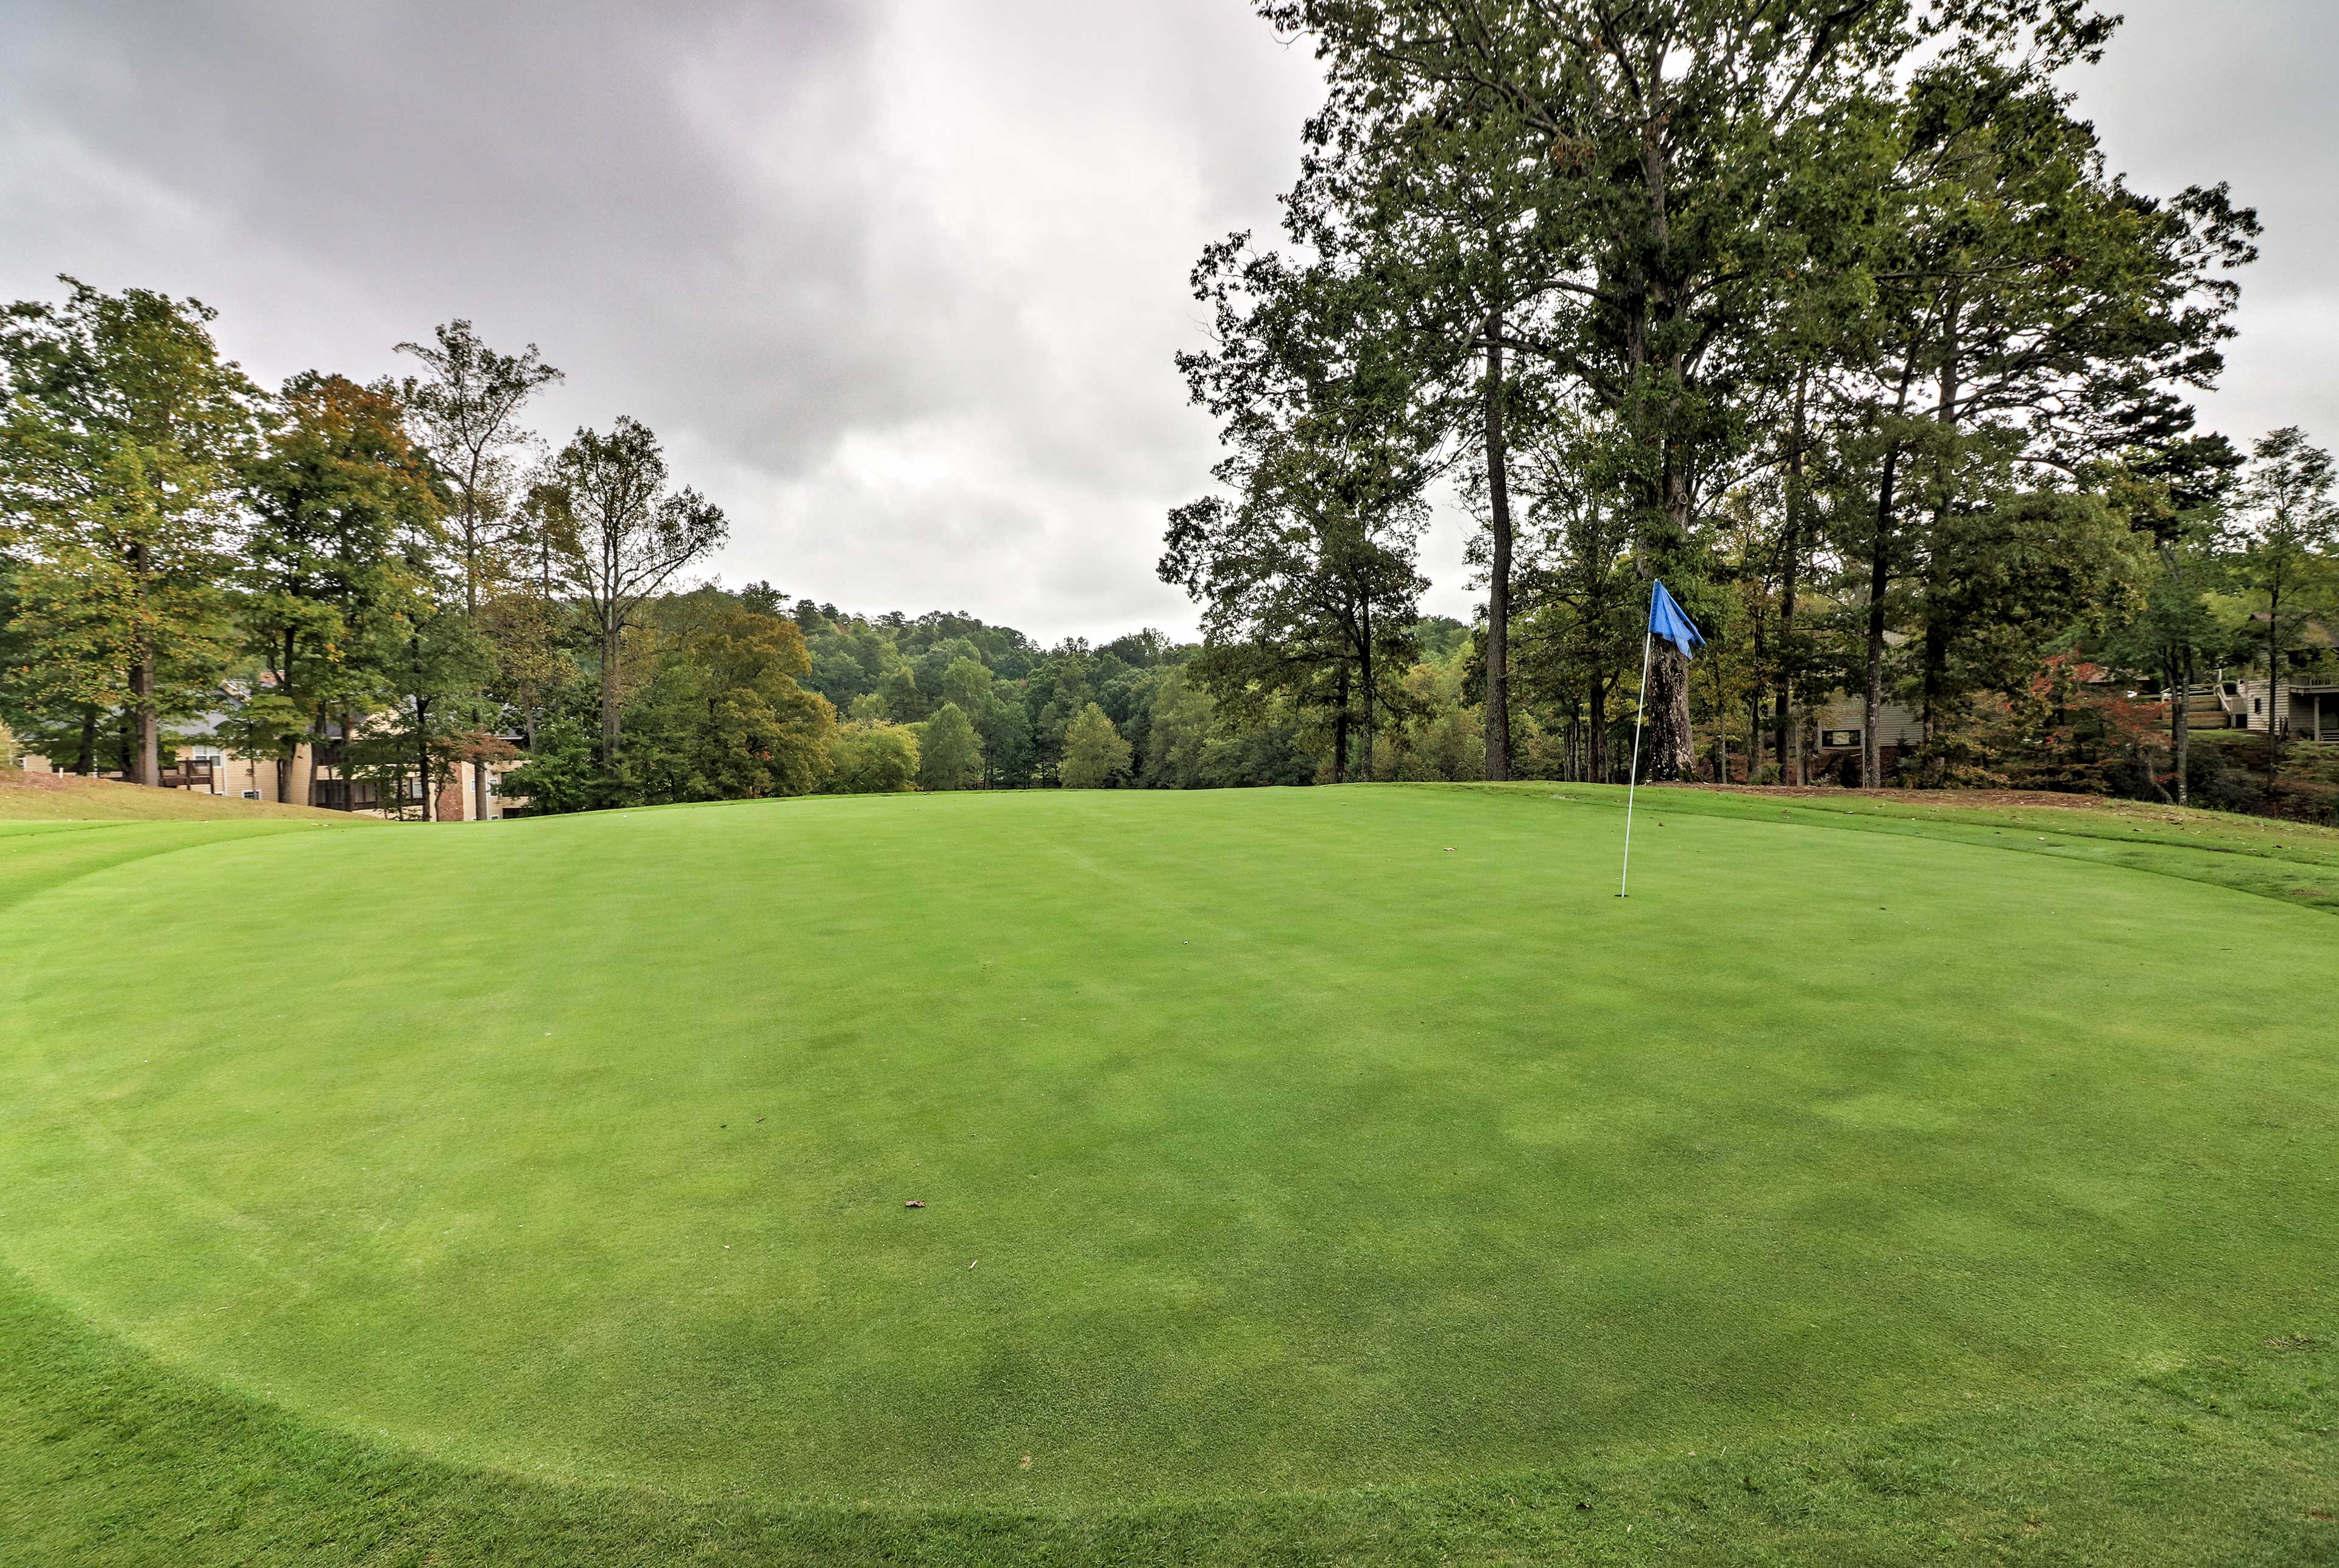 Make a tee time at Kingwood Golf Course for an memorable round.